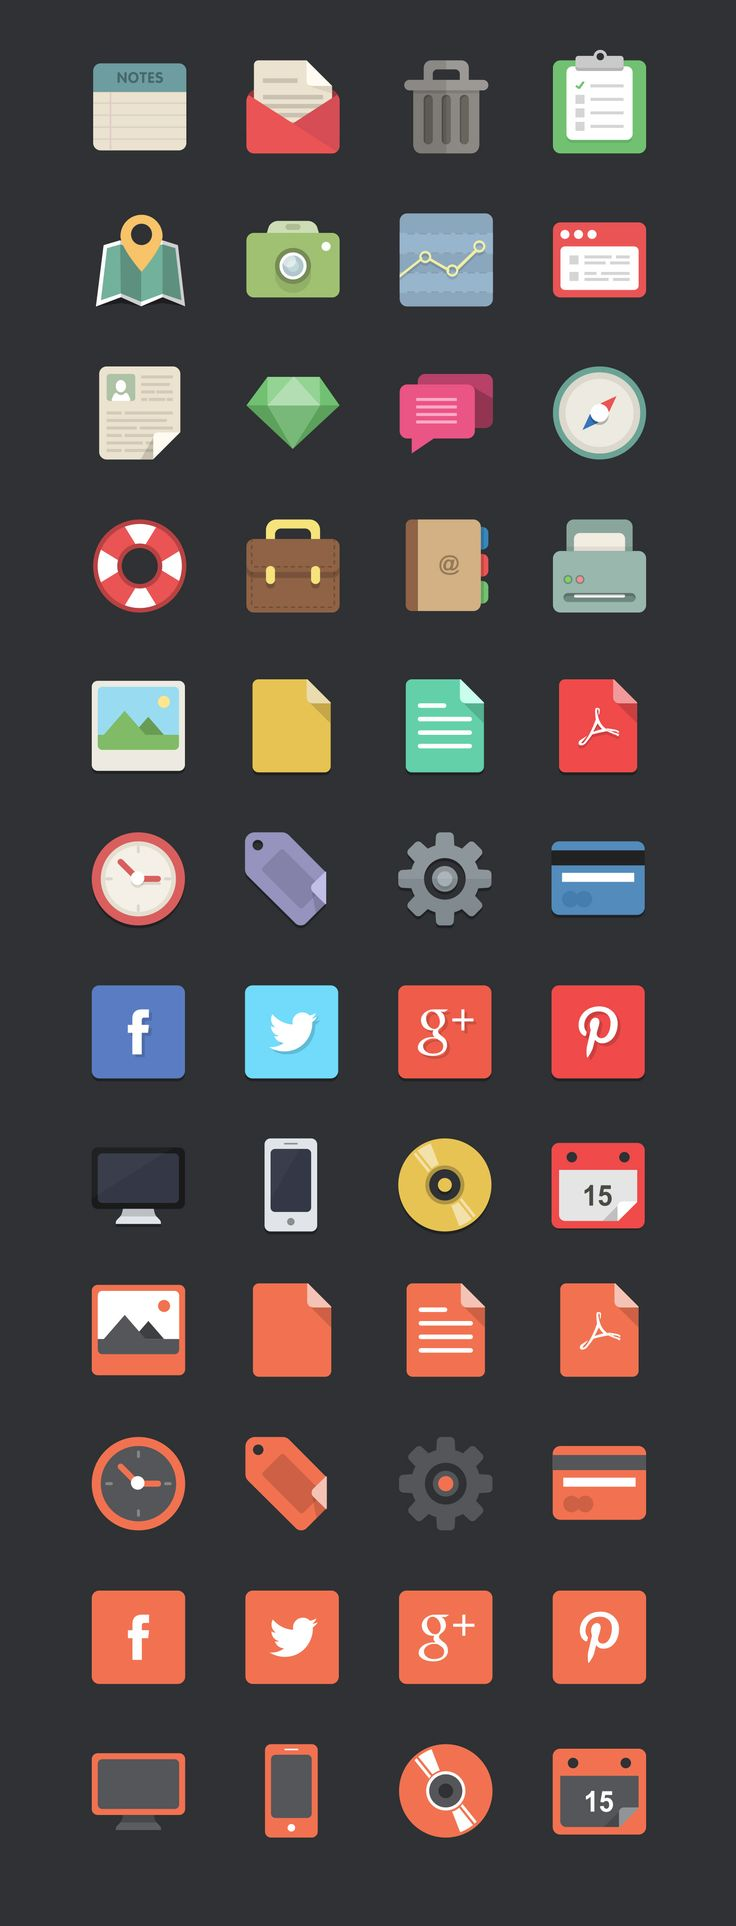 28 free icon sets to level up your web projects.